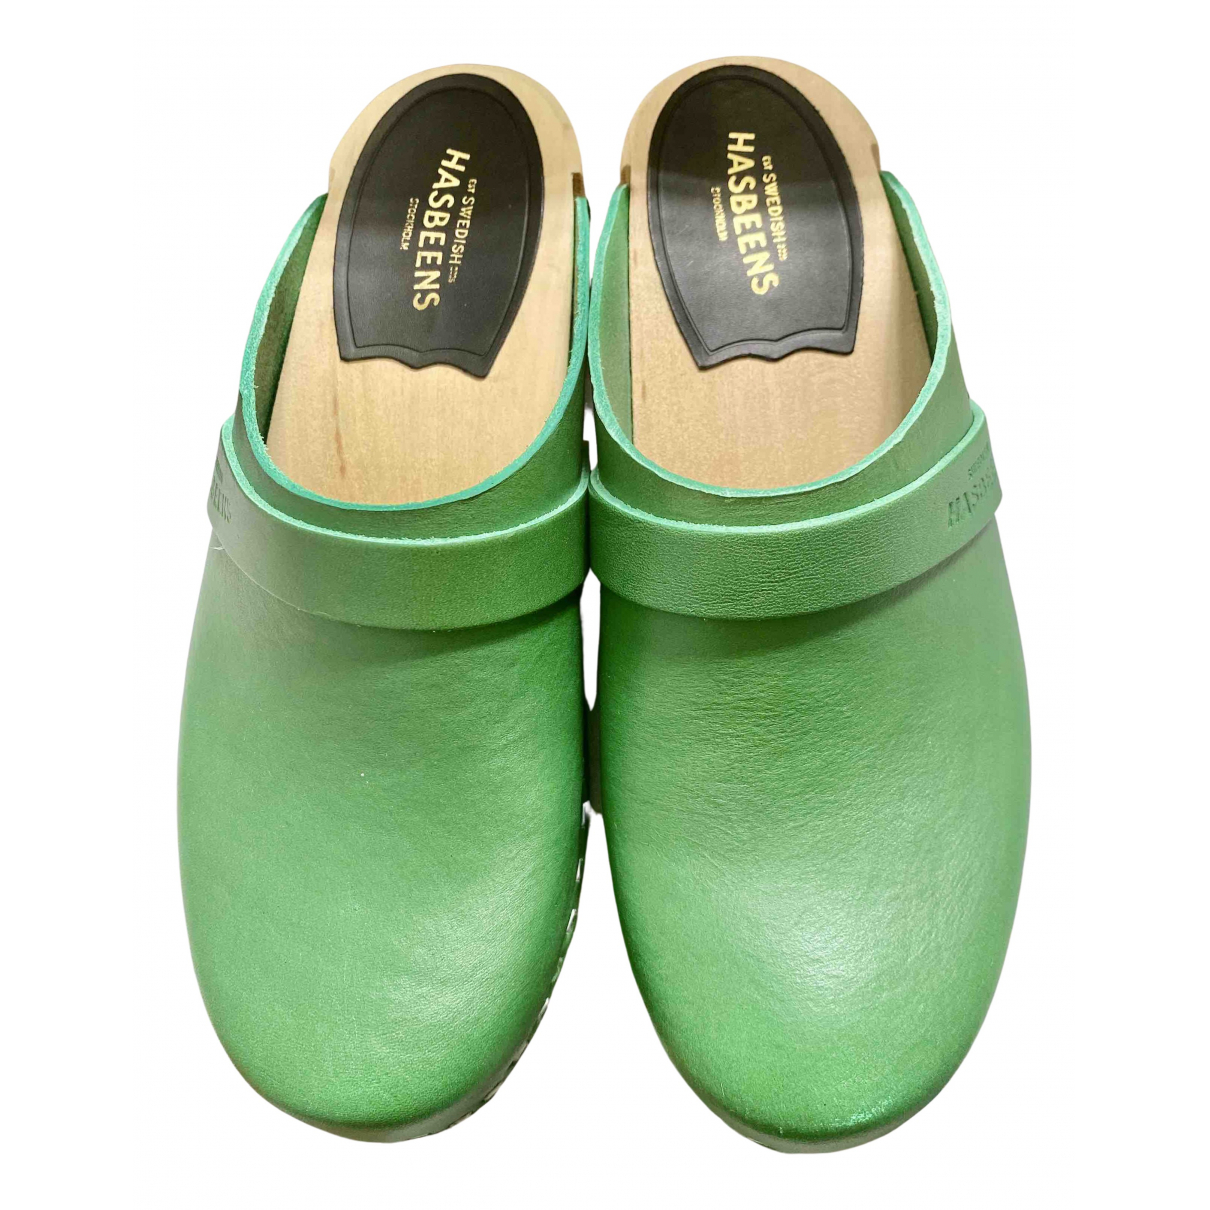 Swedish Hasbeens \N Green Leather Mules & Clogs for Women 36 EU